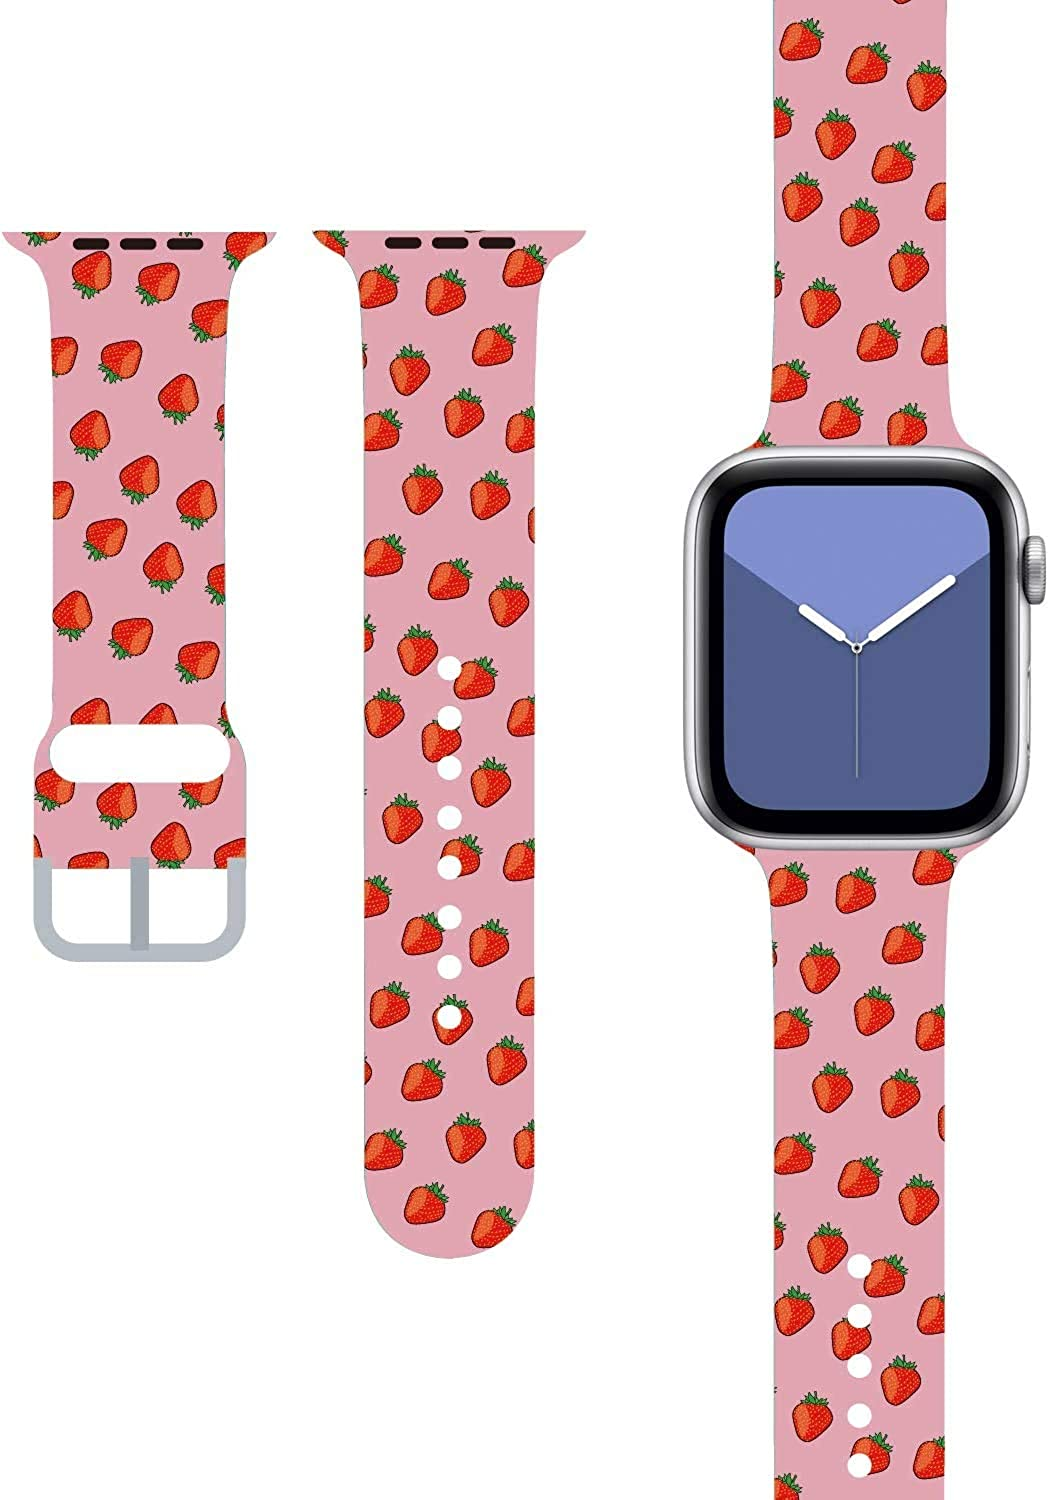 Cute Kawaii Design Compatible with with Apple Watch Band 38mm 40mm 42mm 44mm, Strap with Soft Band Wristband for Compatible for Girl Women Kids iWatch SE Series 6/5/4/3/2/1 (pink)